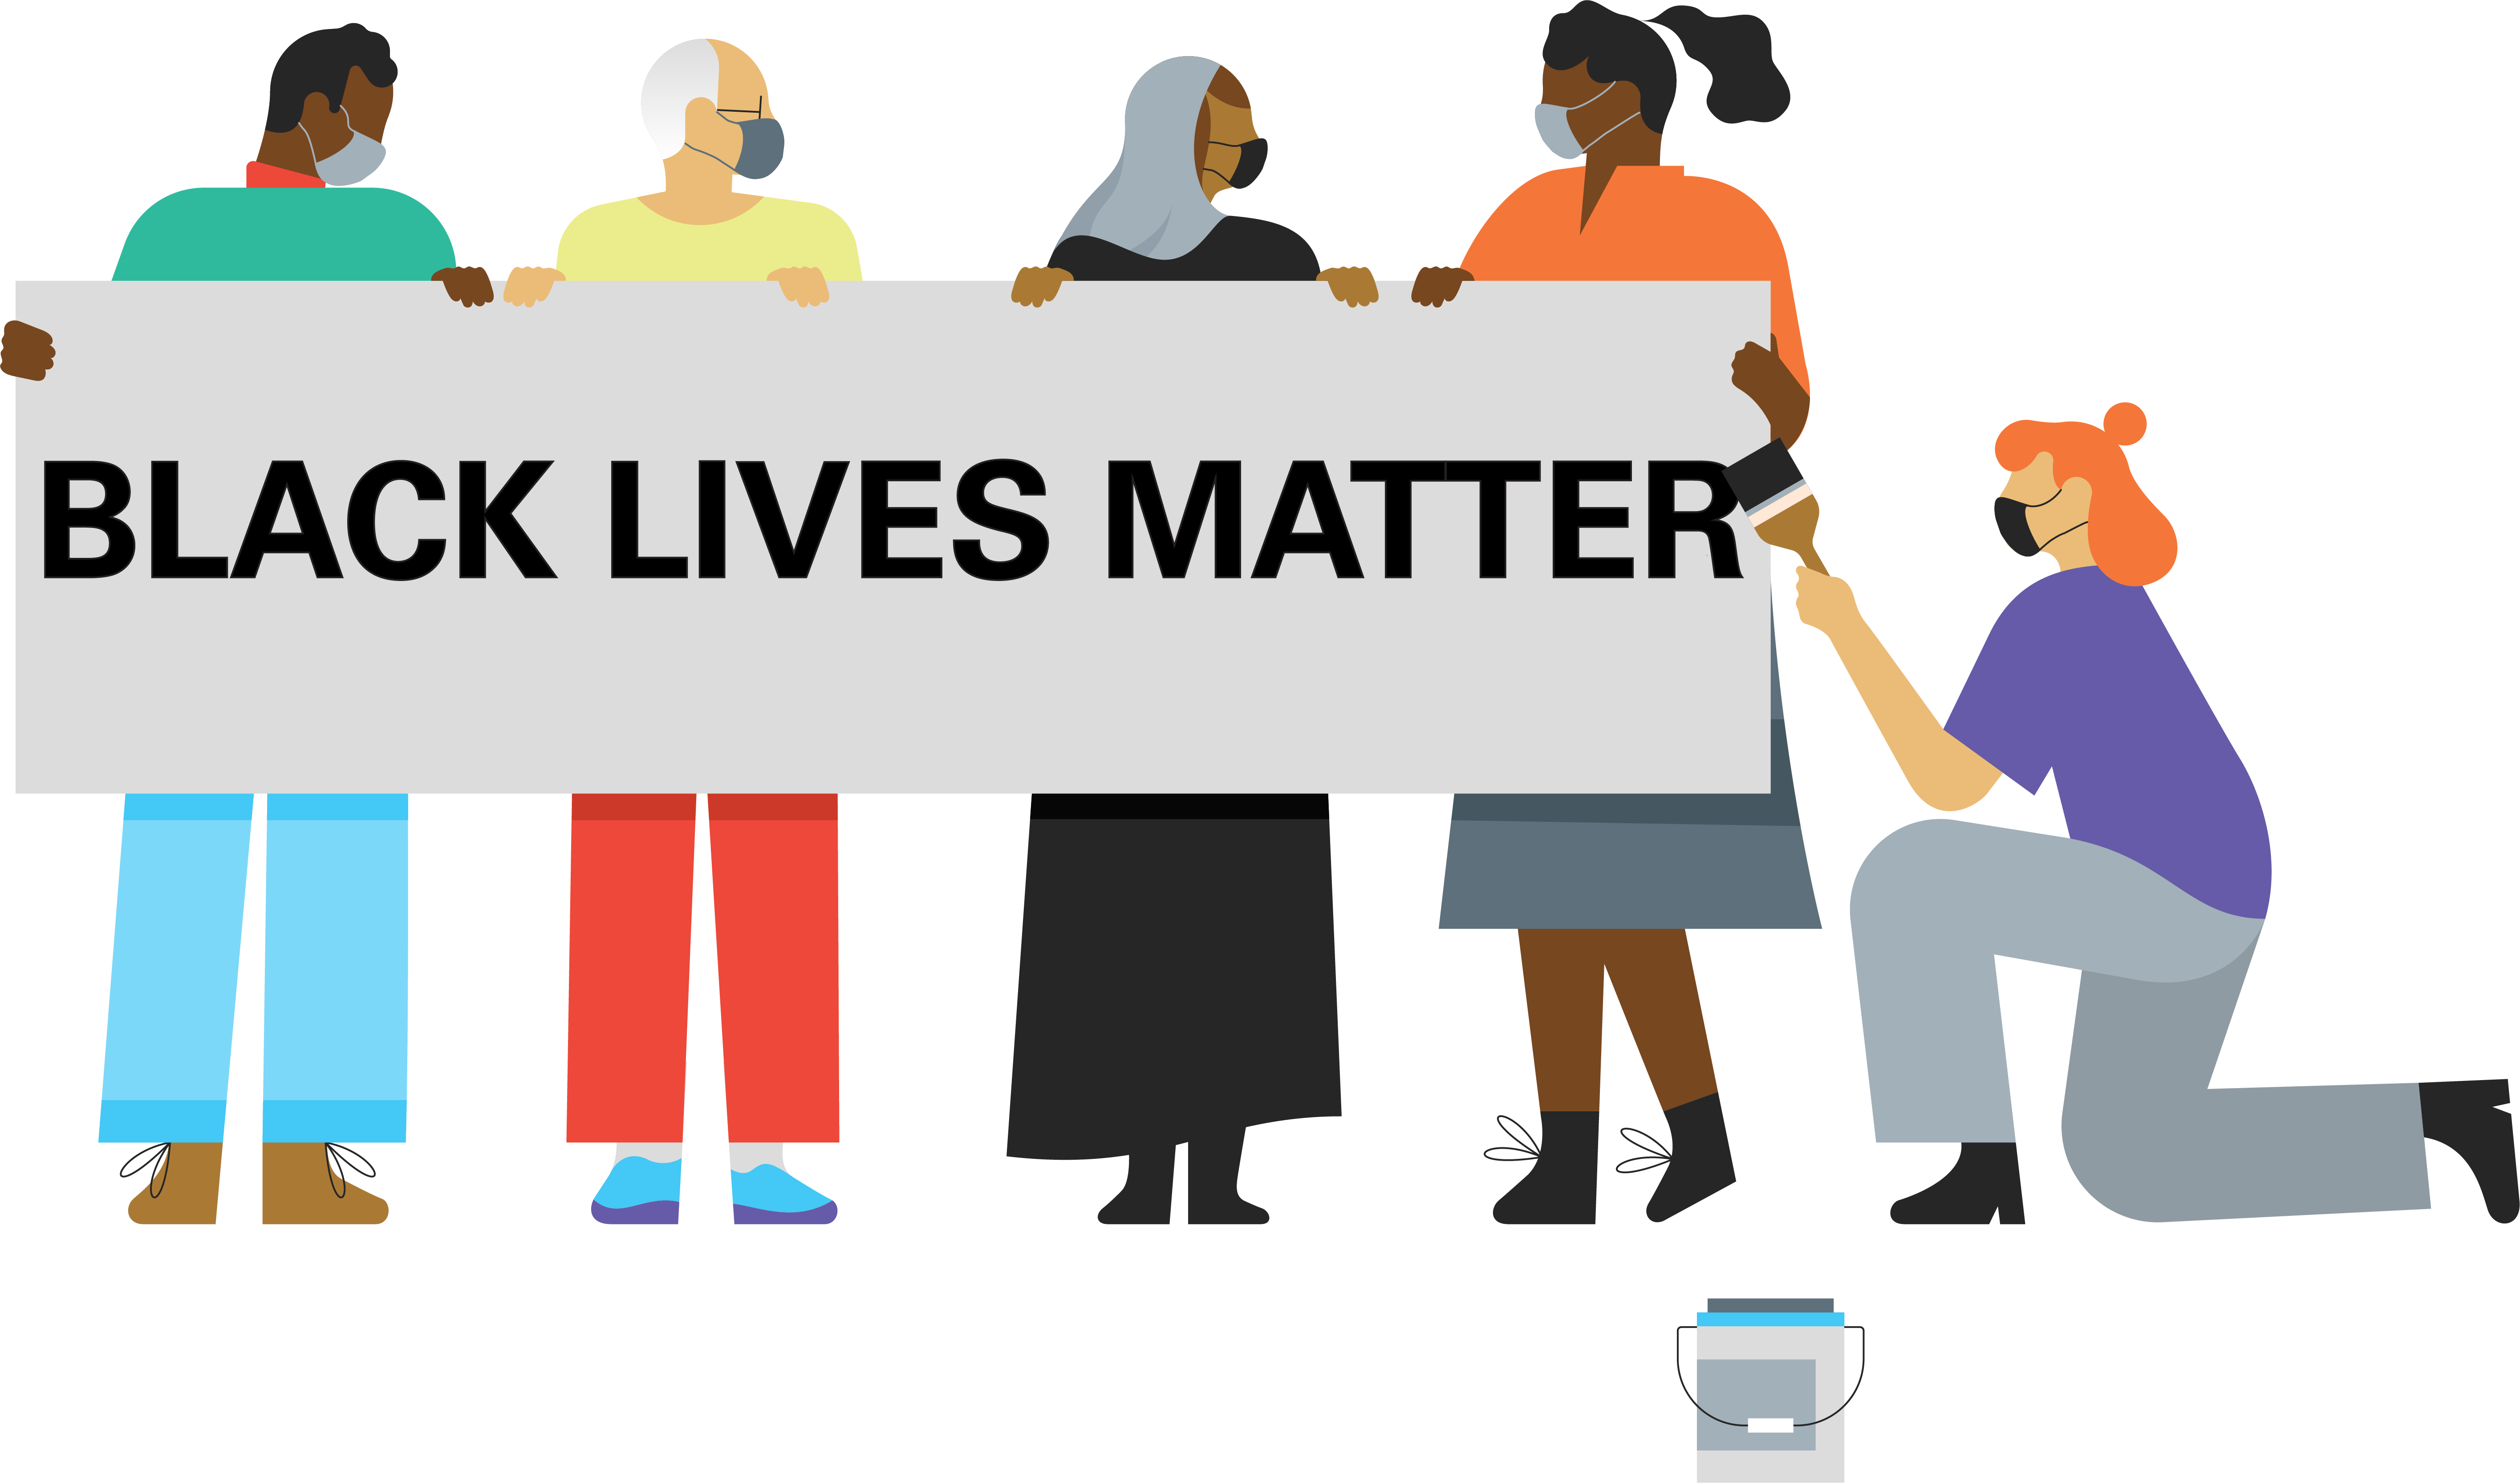 Illustration with a group of five people holding a large banner that reads Black Lives Matter. One person is kneeling with a paint brush on the right of the sign.